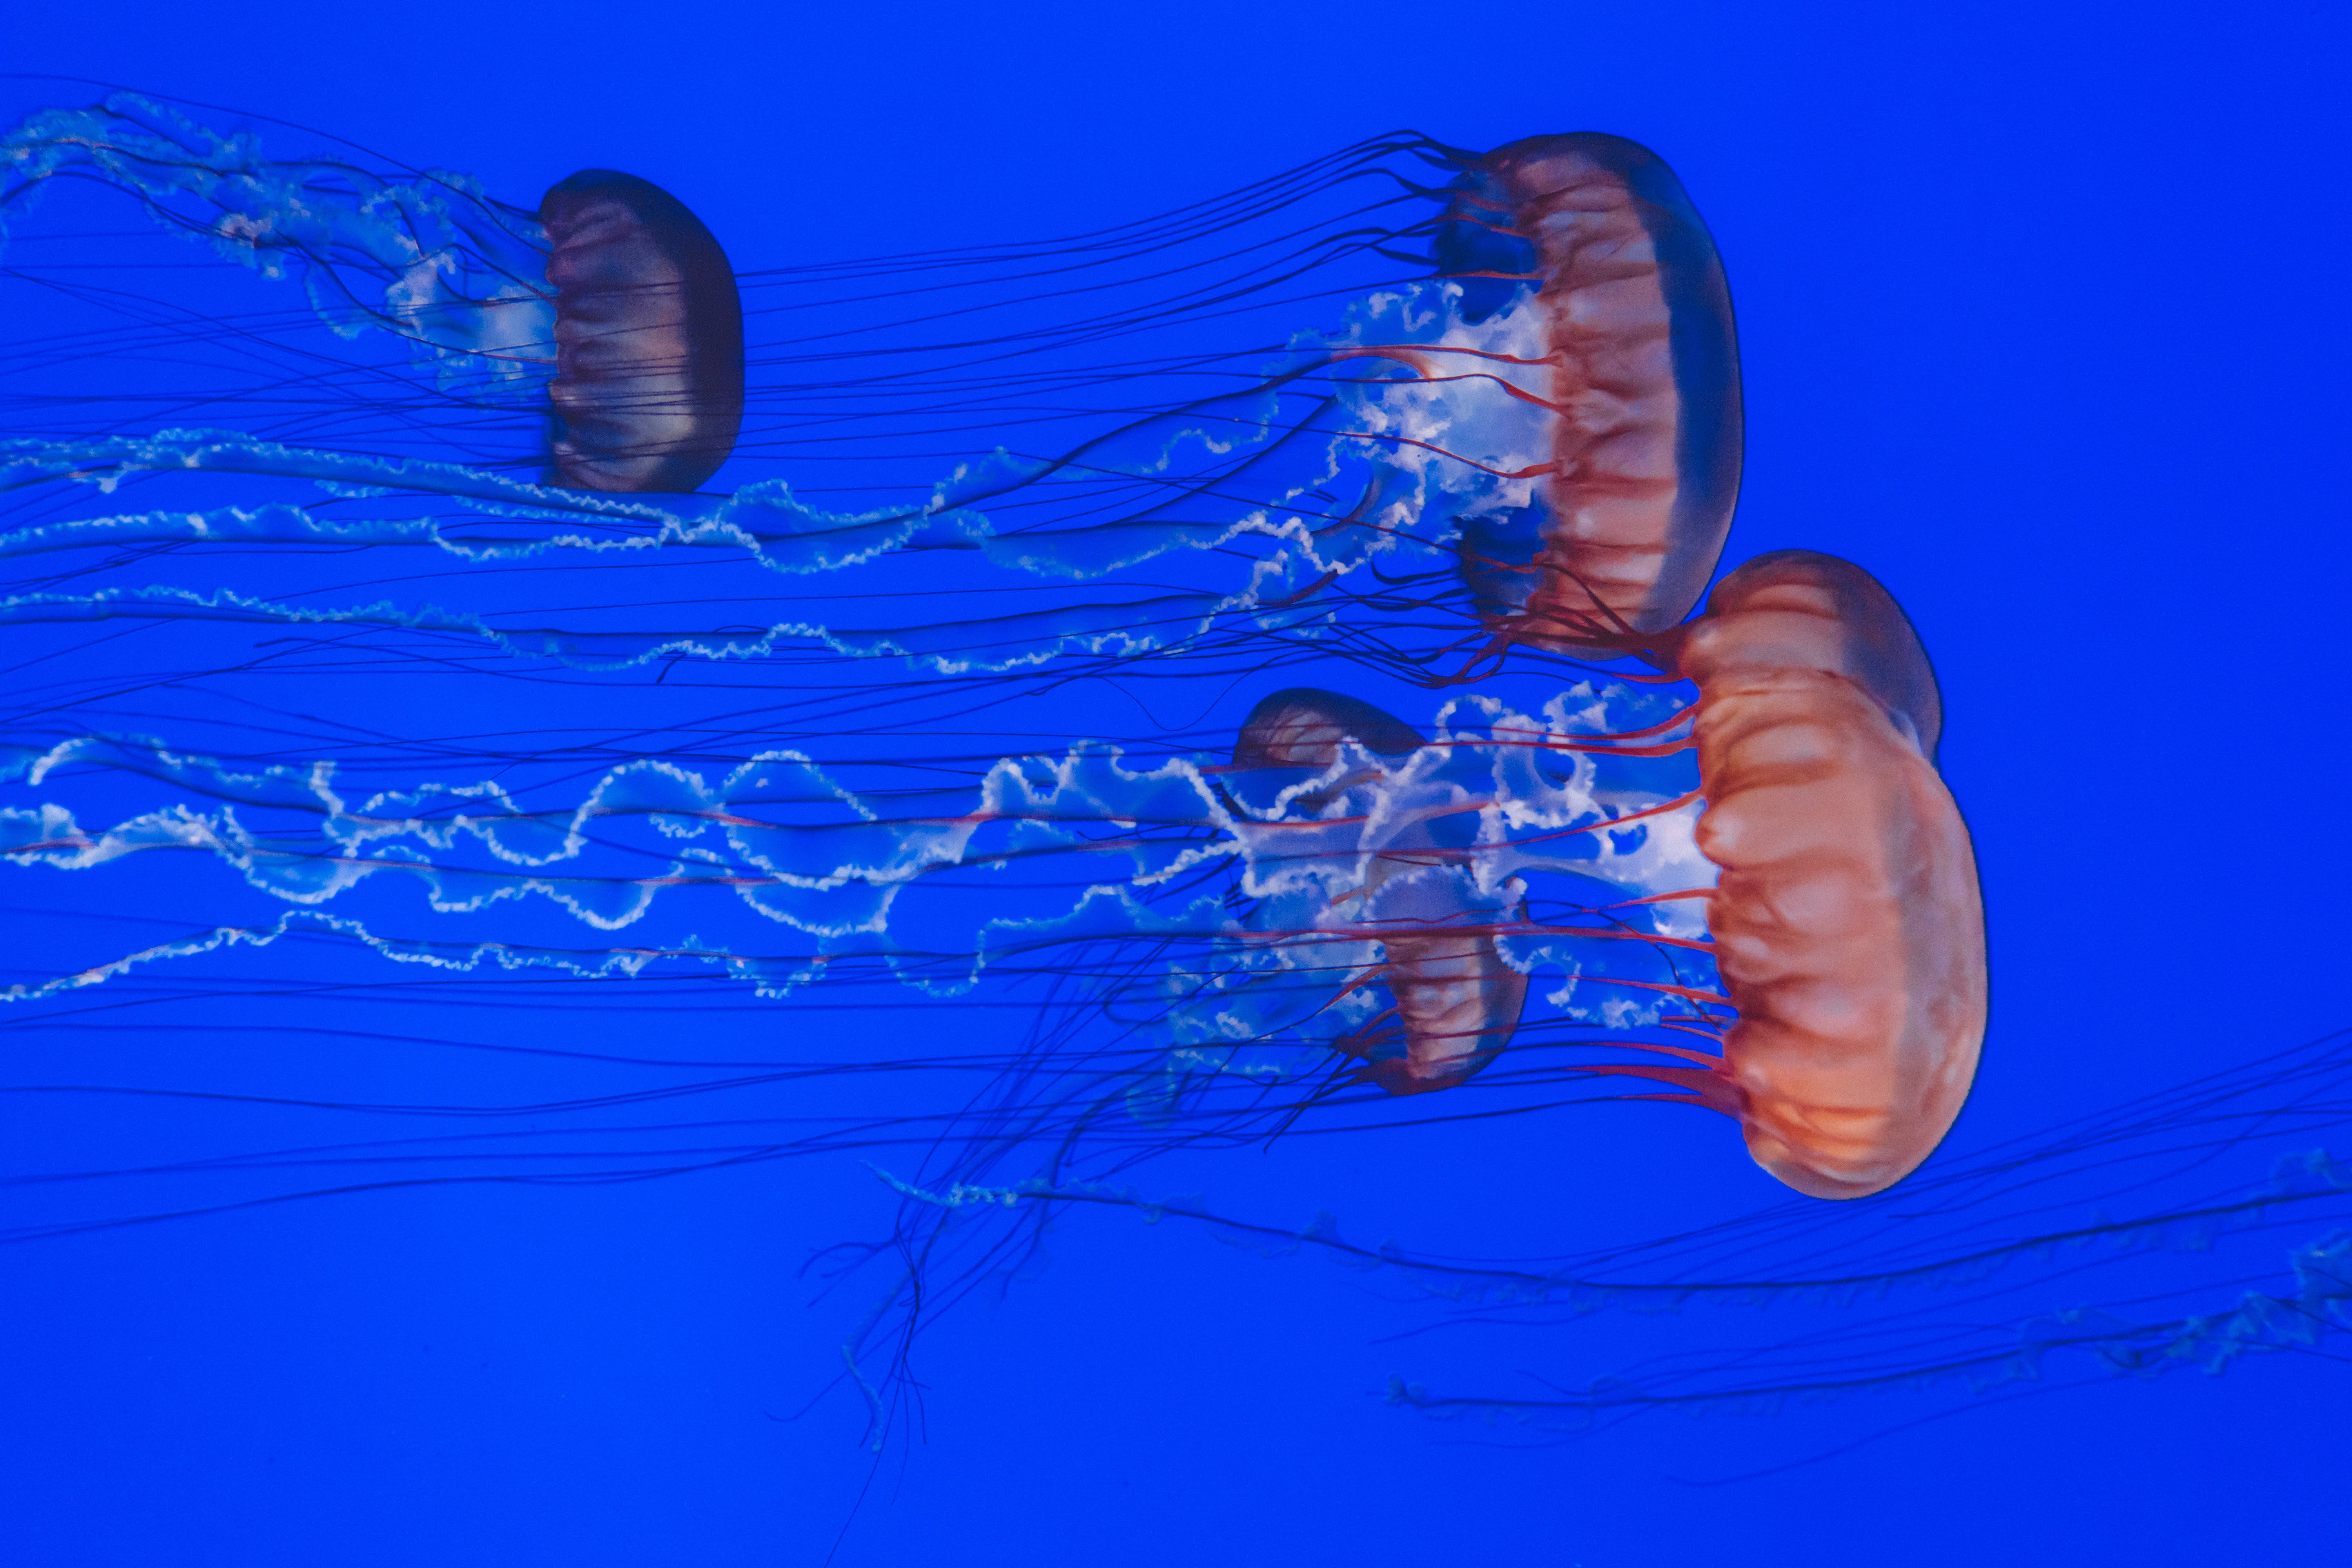 Four Brown and Gray Jellyfishes